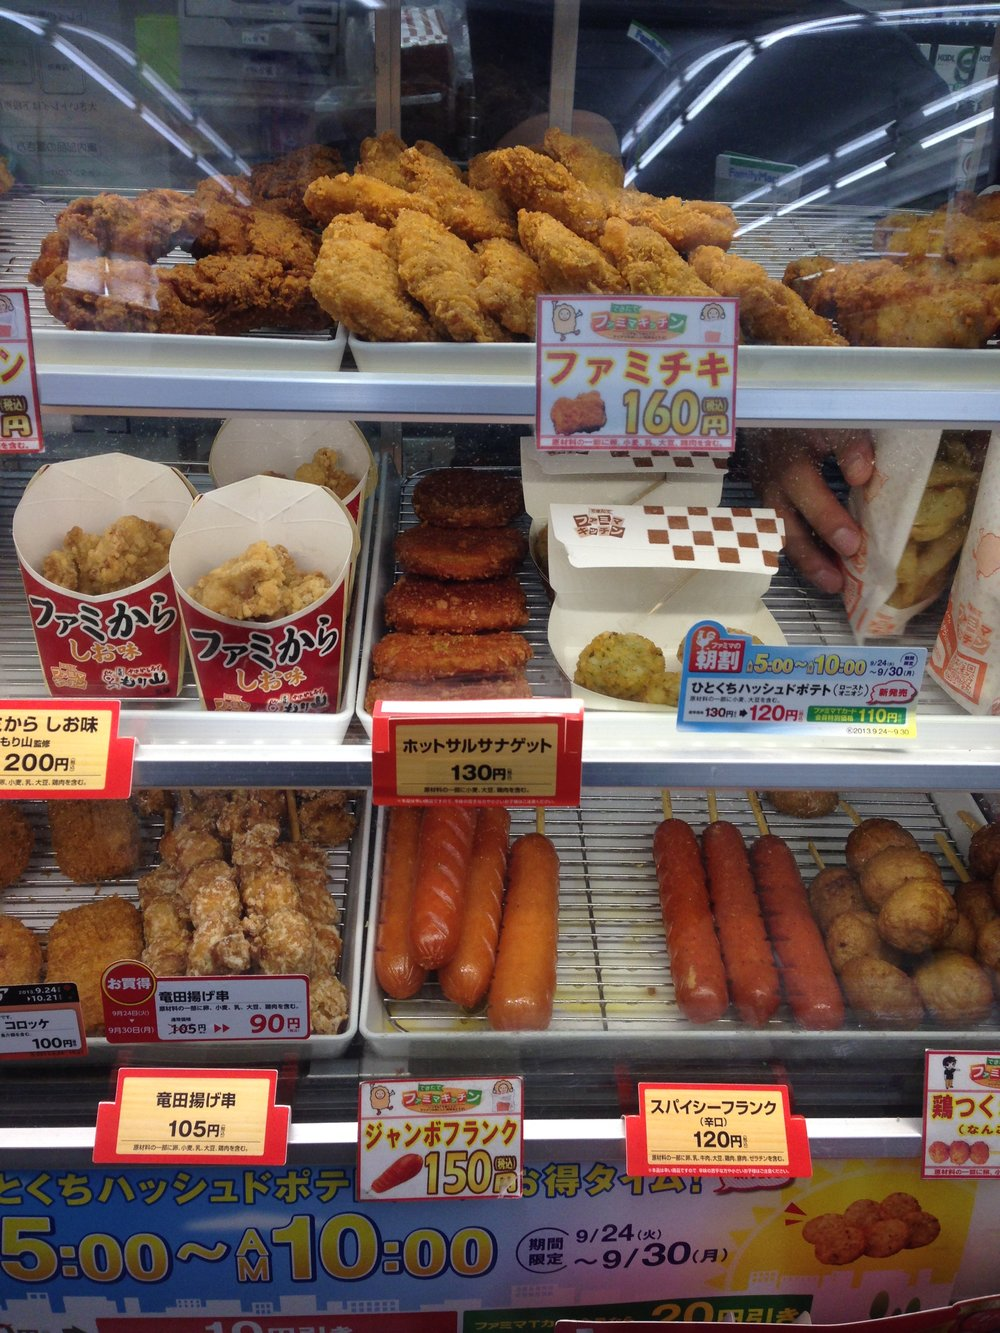 Hot Food in Lawson - Fashion & Lifestyle Spots in Tokyo, Japan - DROP